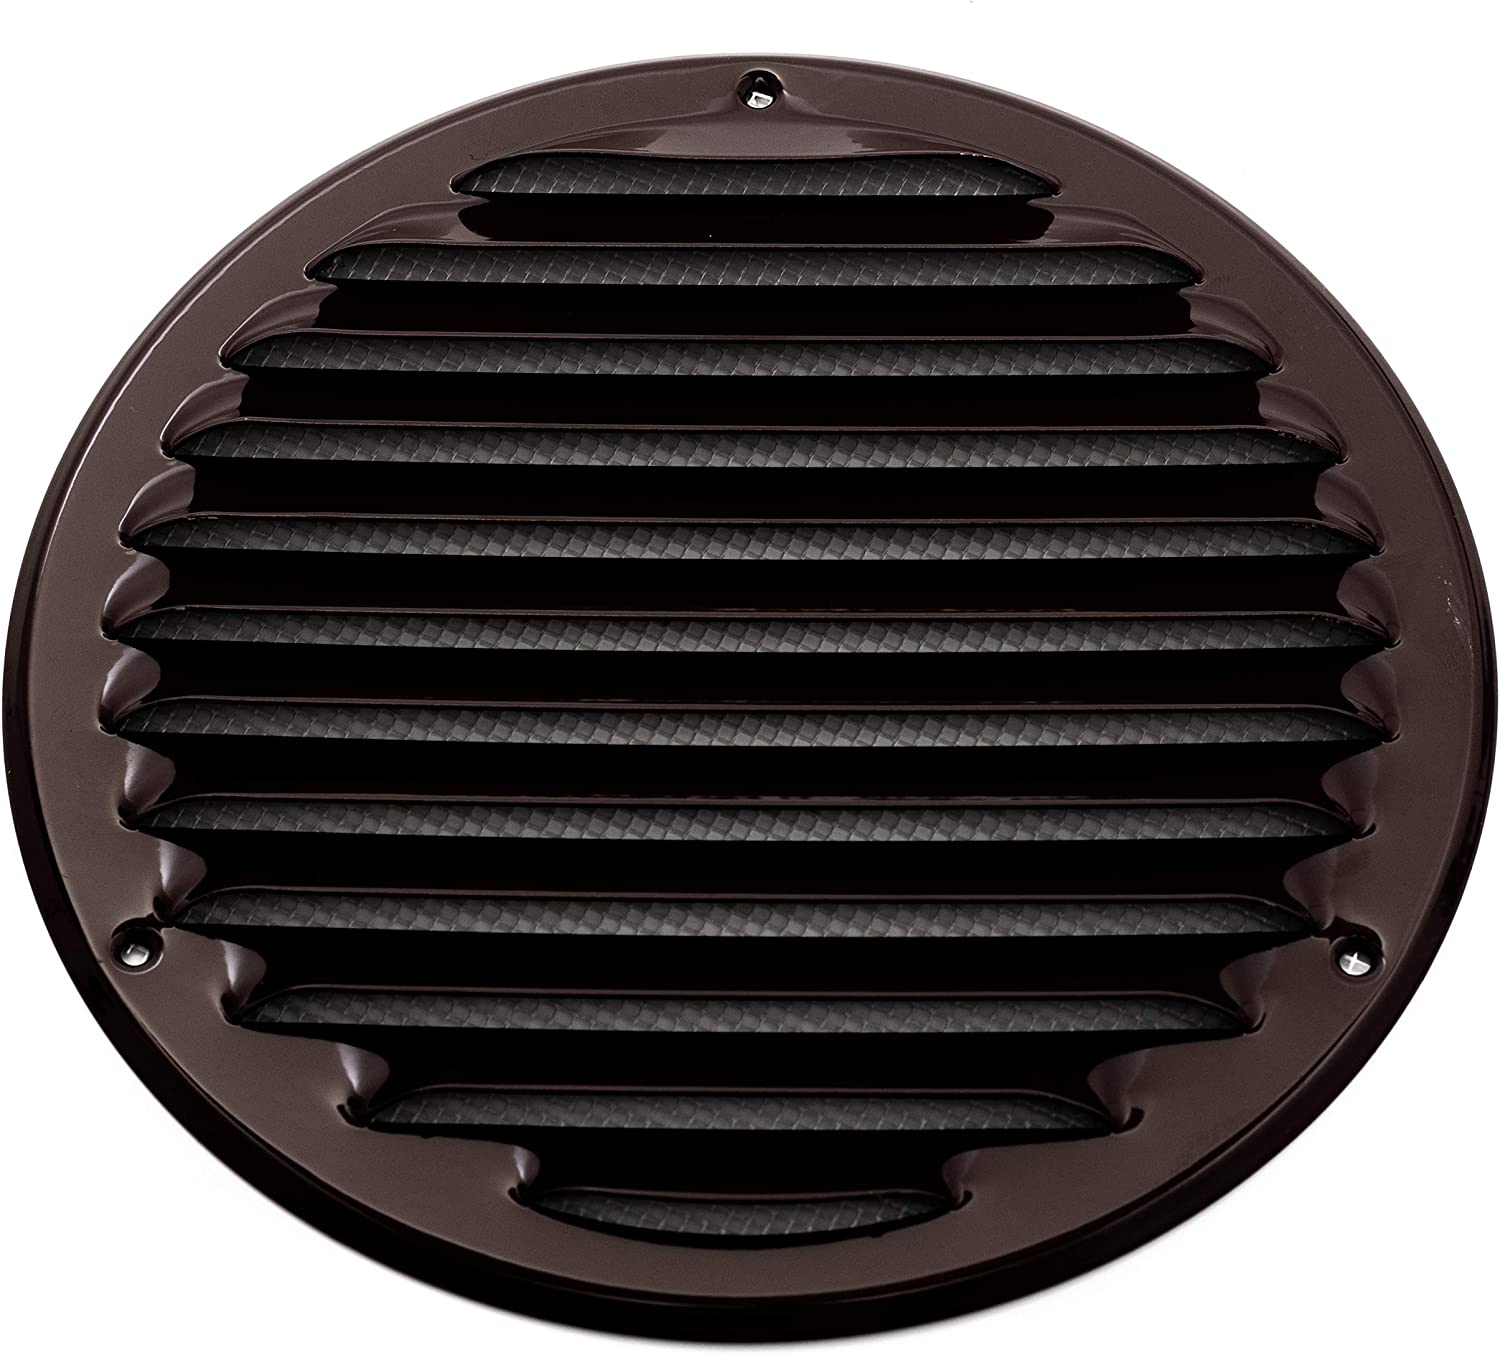 Vent Systems 8'' Inch Brown Soffit Vent Cover - Round Air Vent Louver - Grill Cover - Built-in Insect Screen - HVAC Vents for Bathroom, Home Office, Kitchen